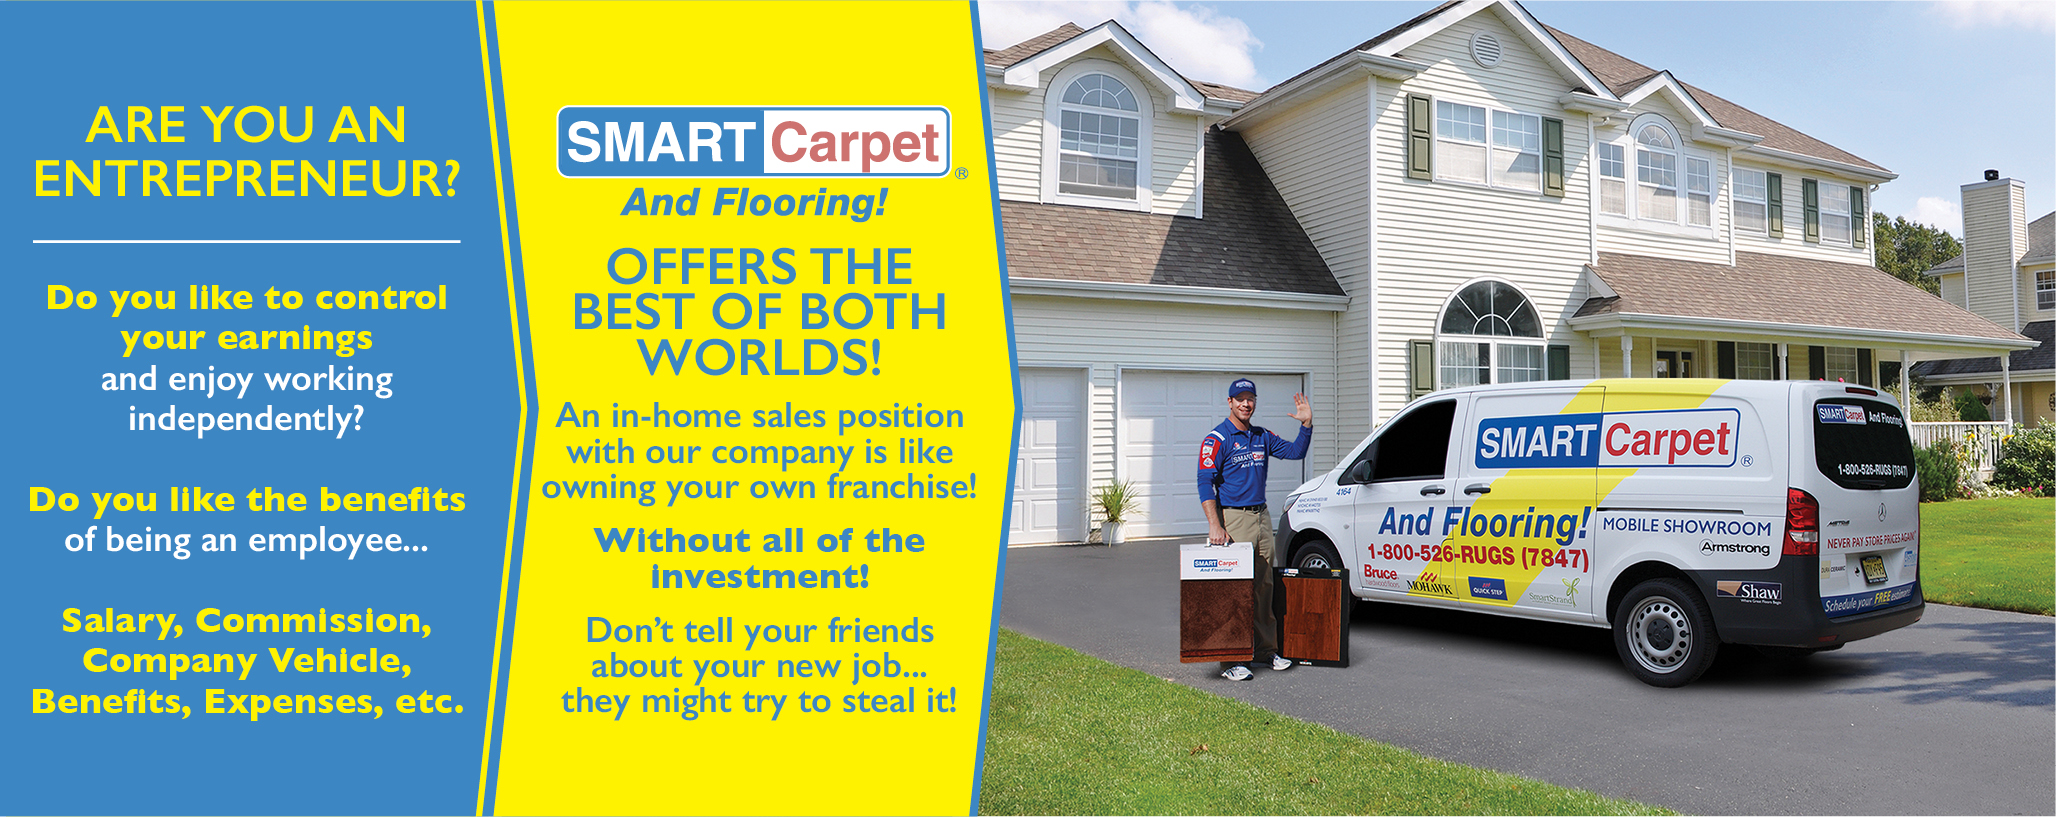 home carpet and flooring sales jobs